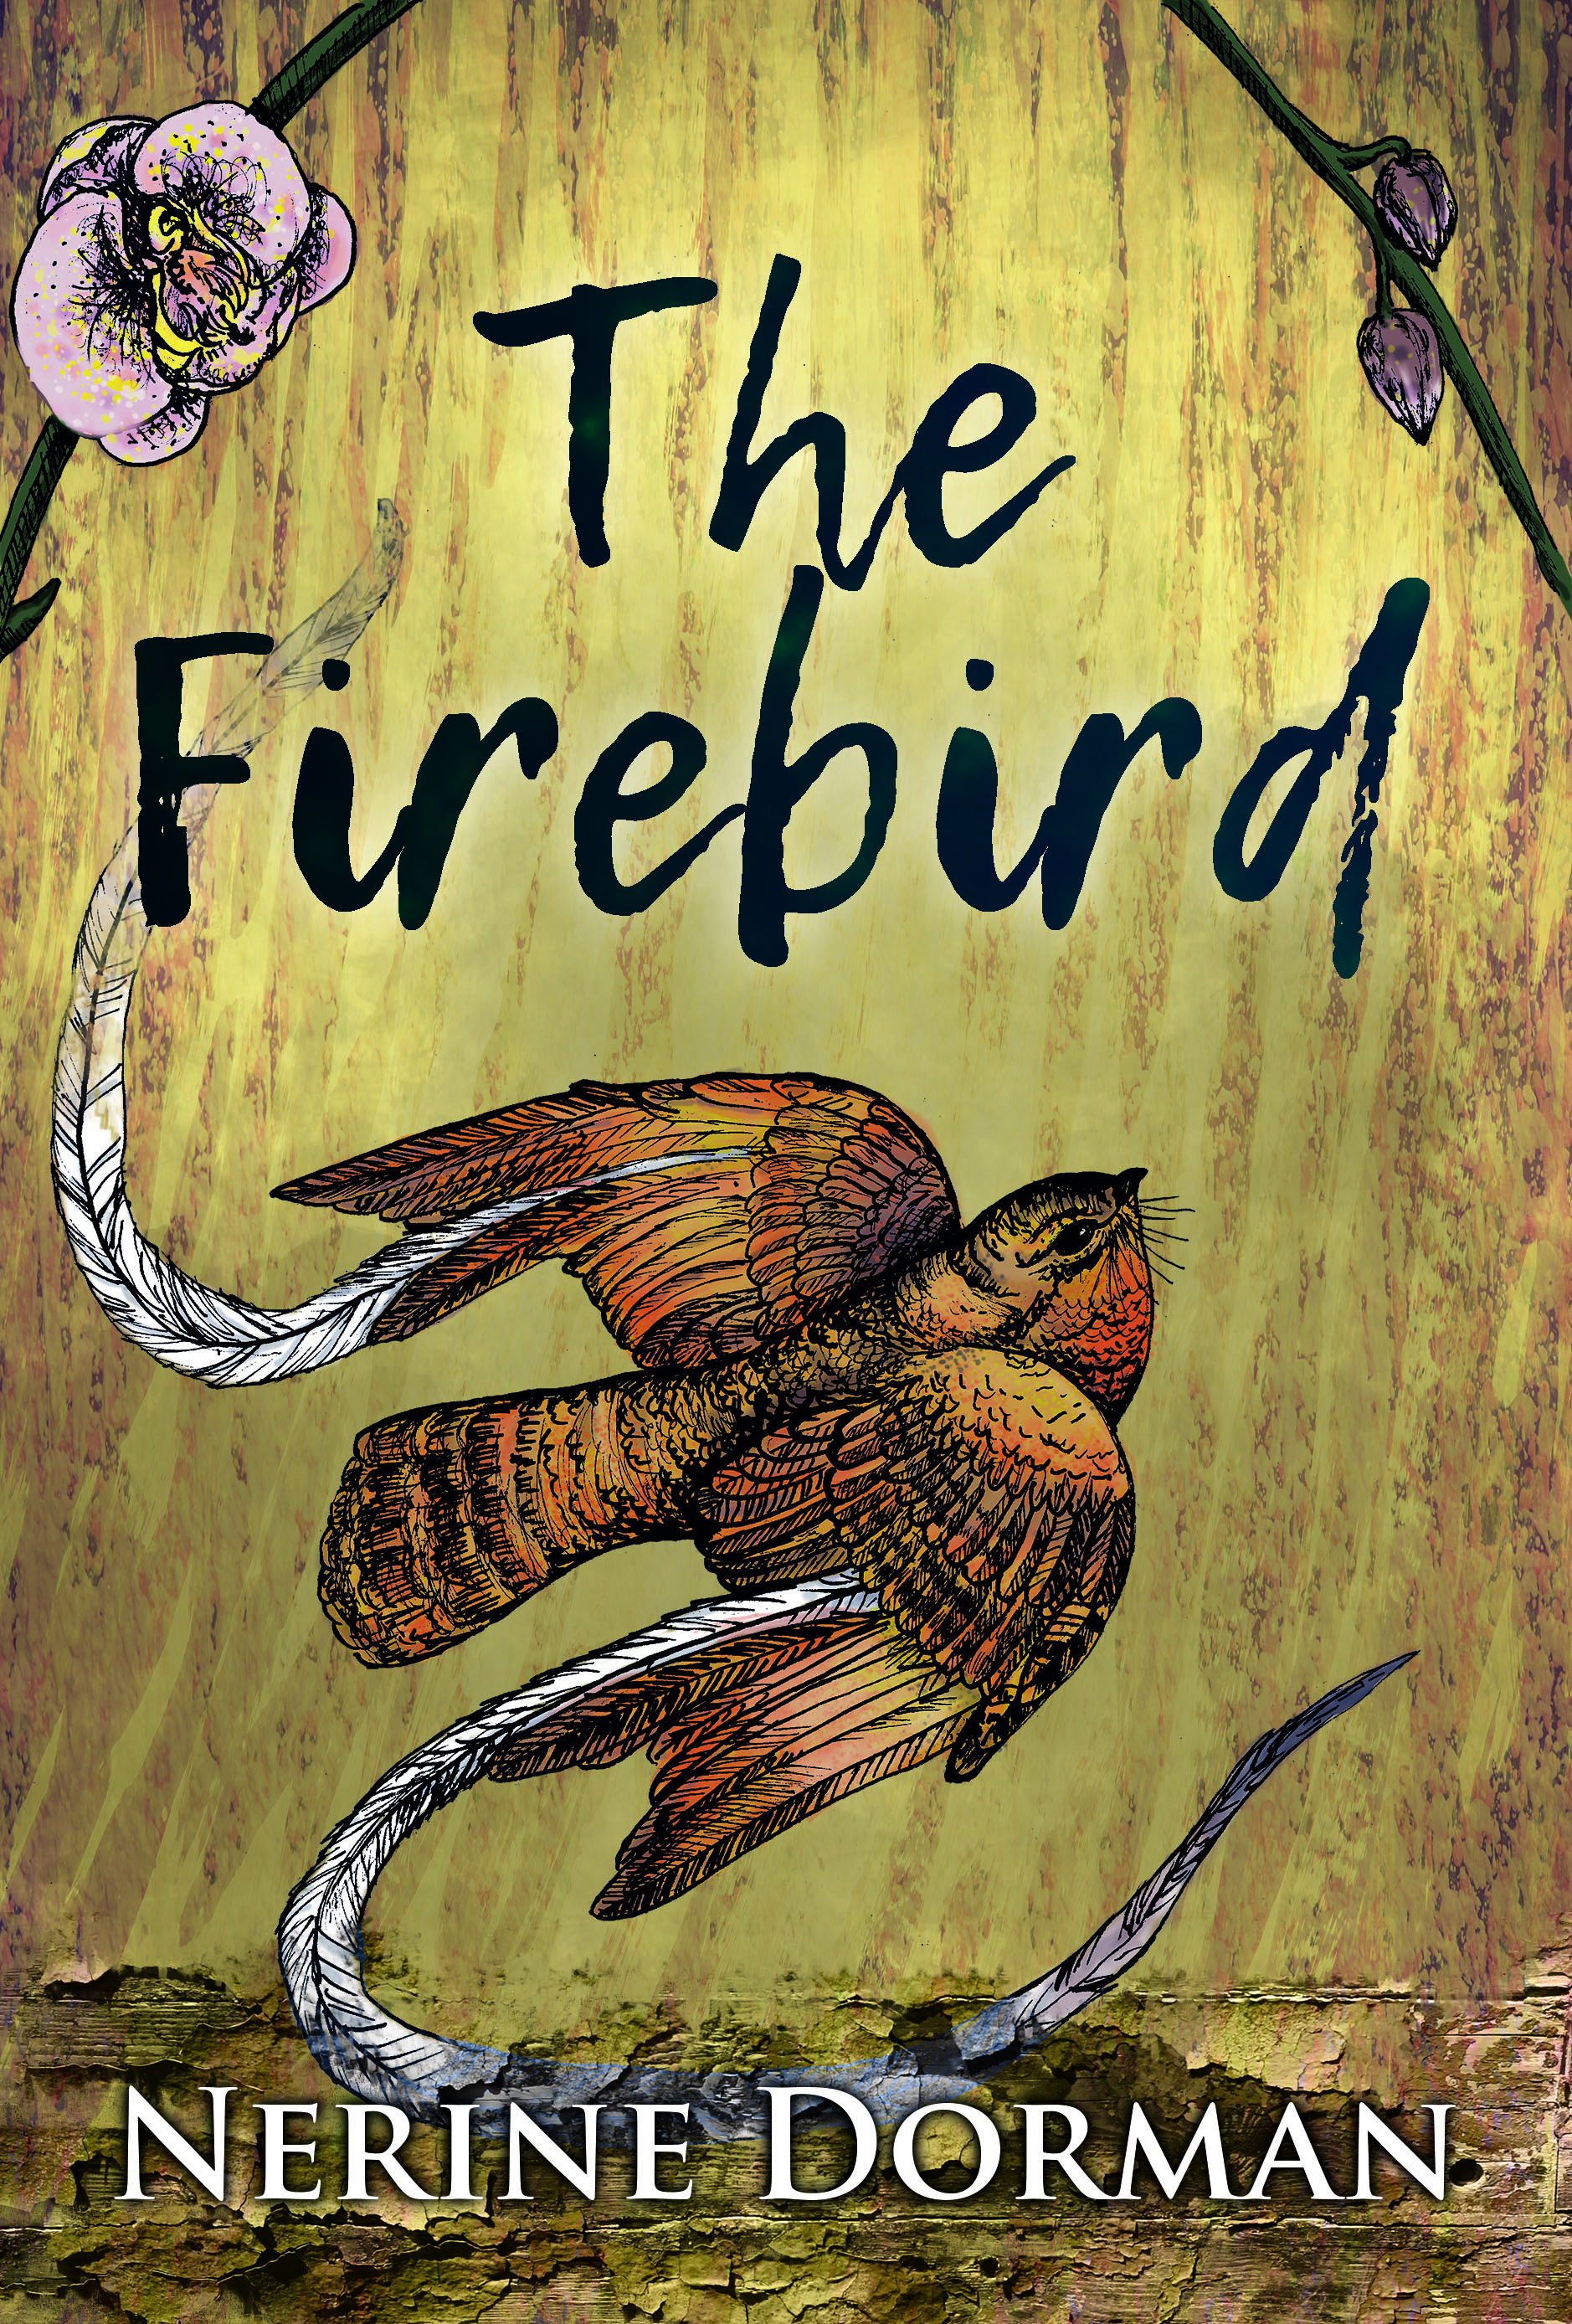 Book Review: The Firebird, by Nerine Dorman